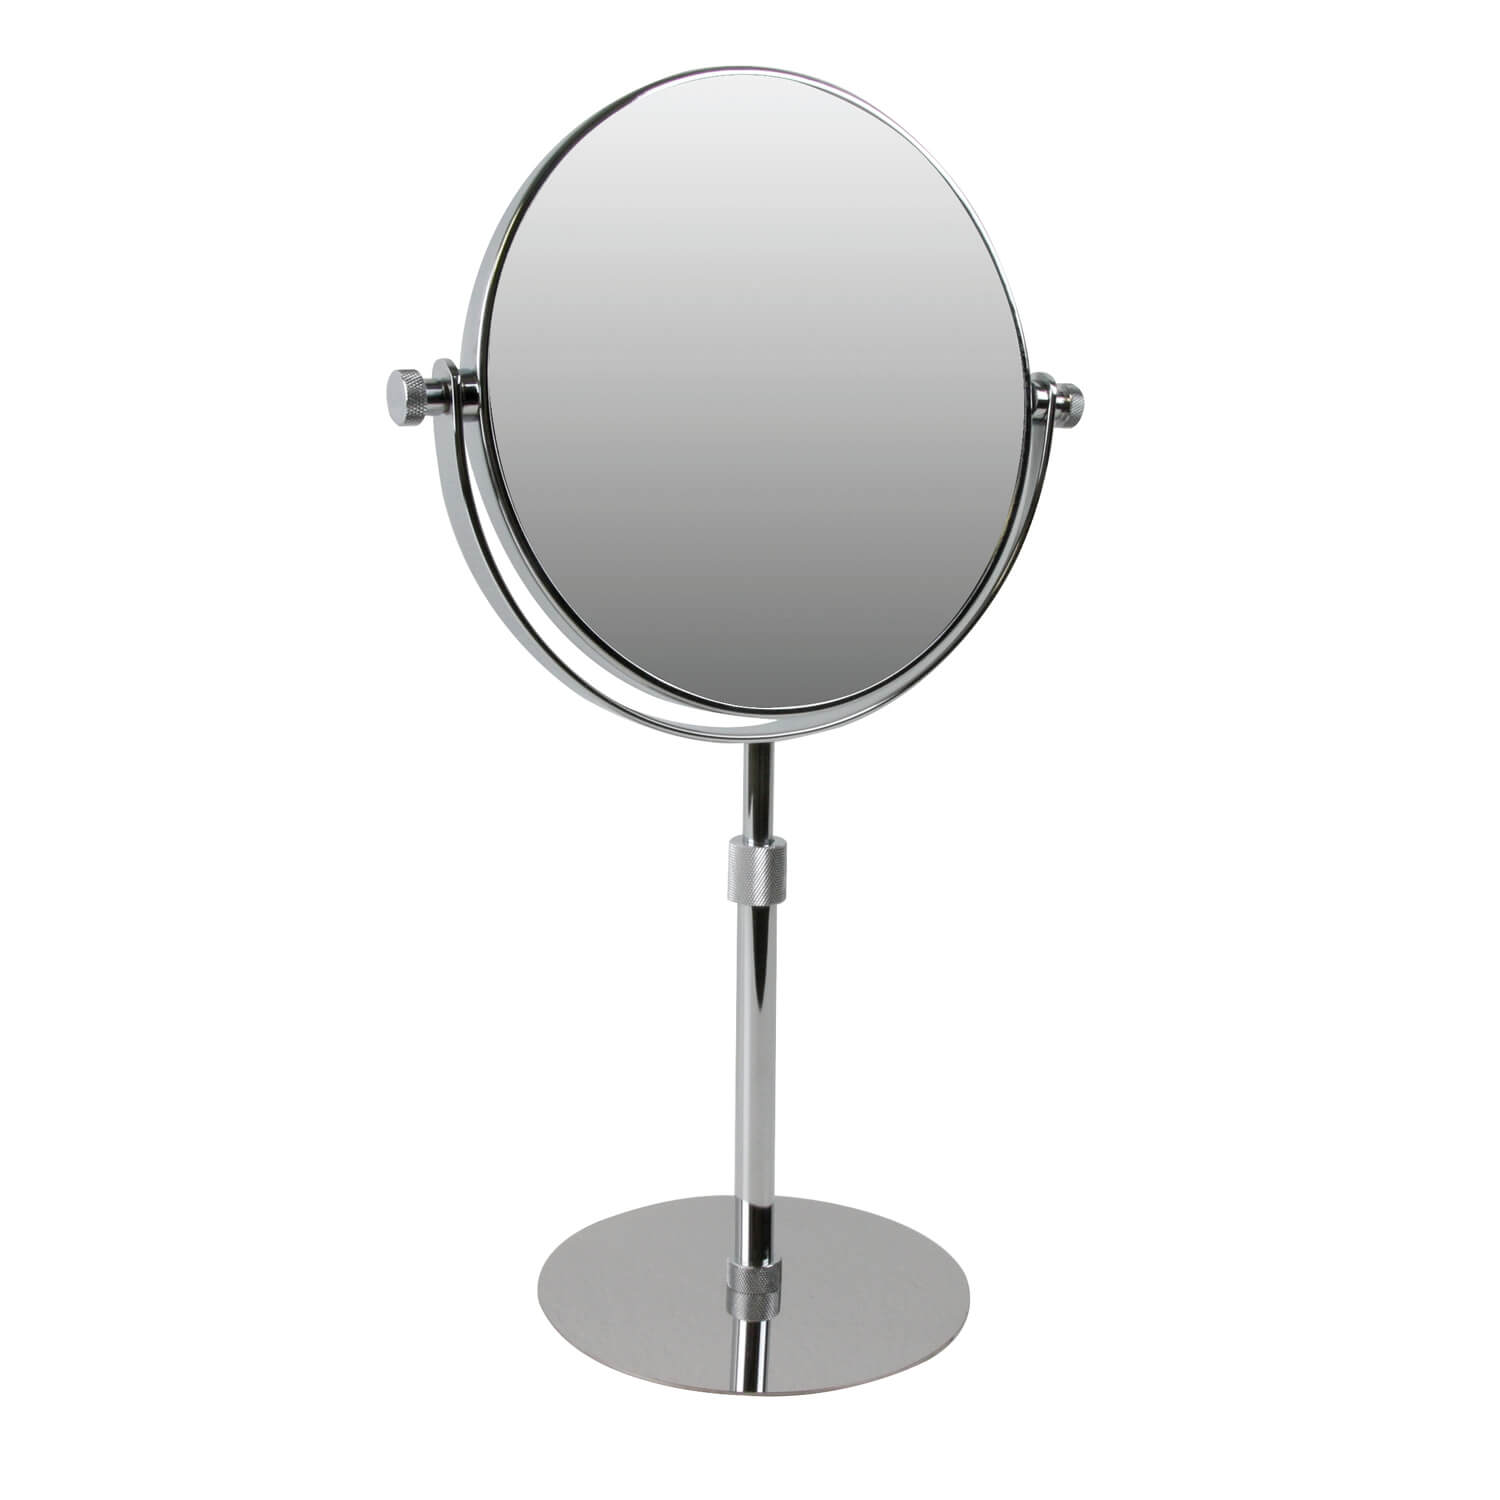 Image of Miller Classic Freestanding Mirror, Chrome